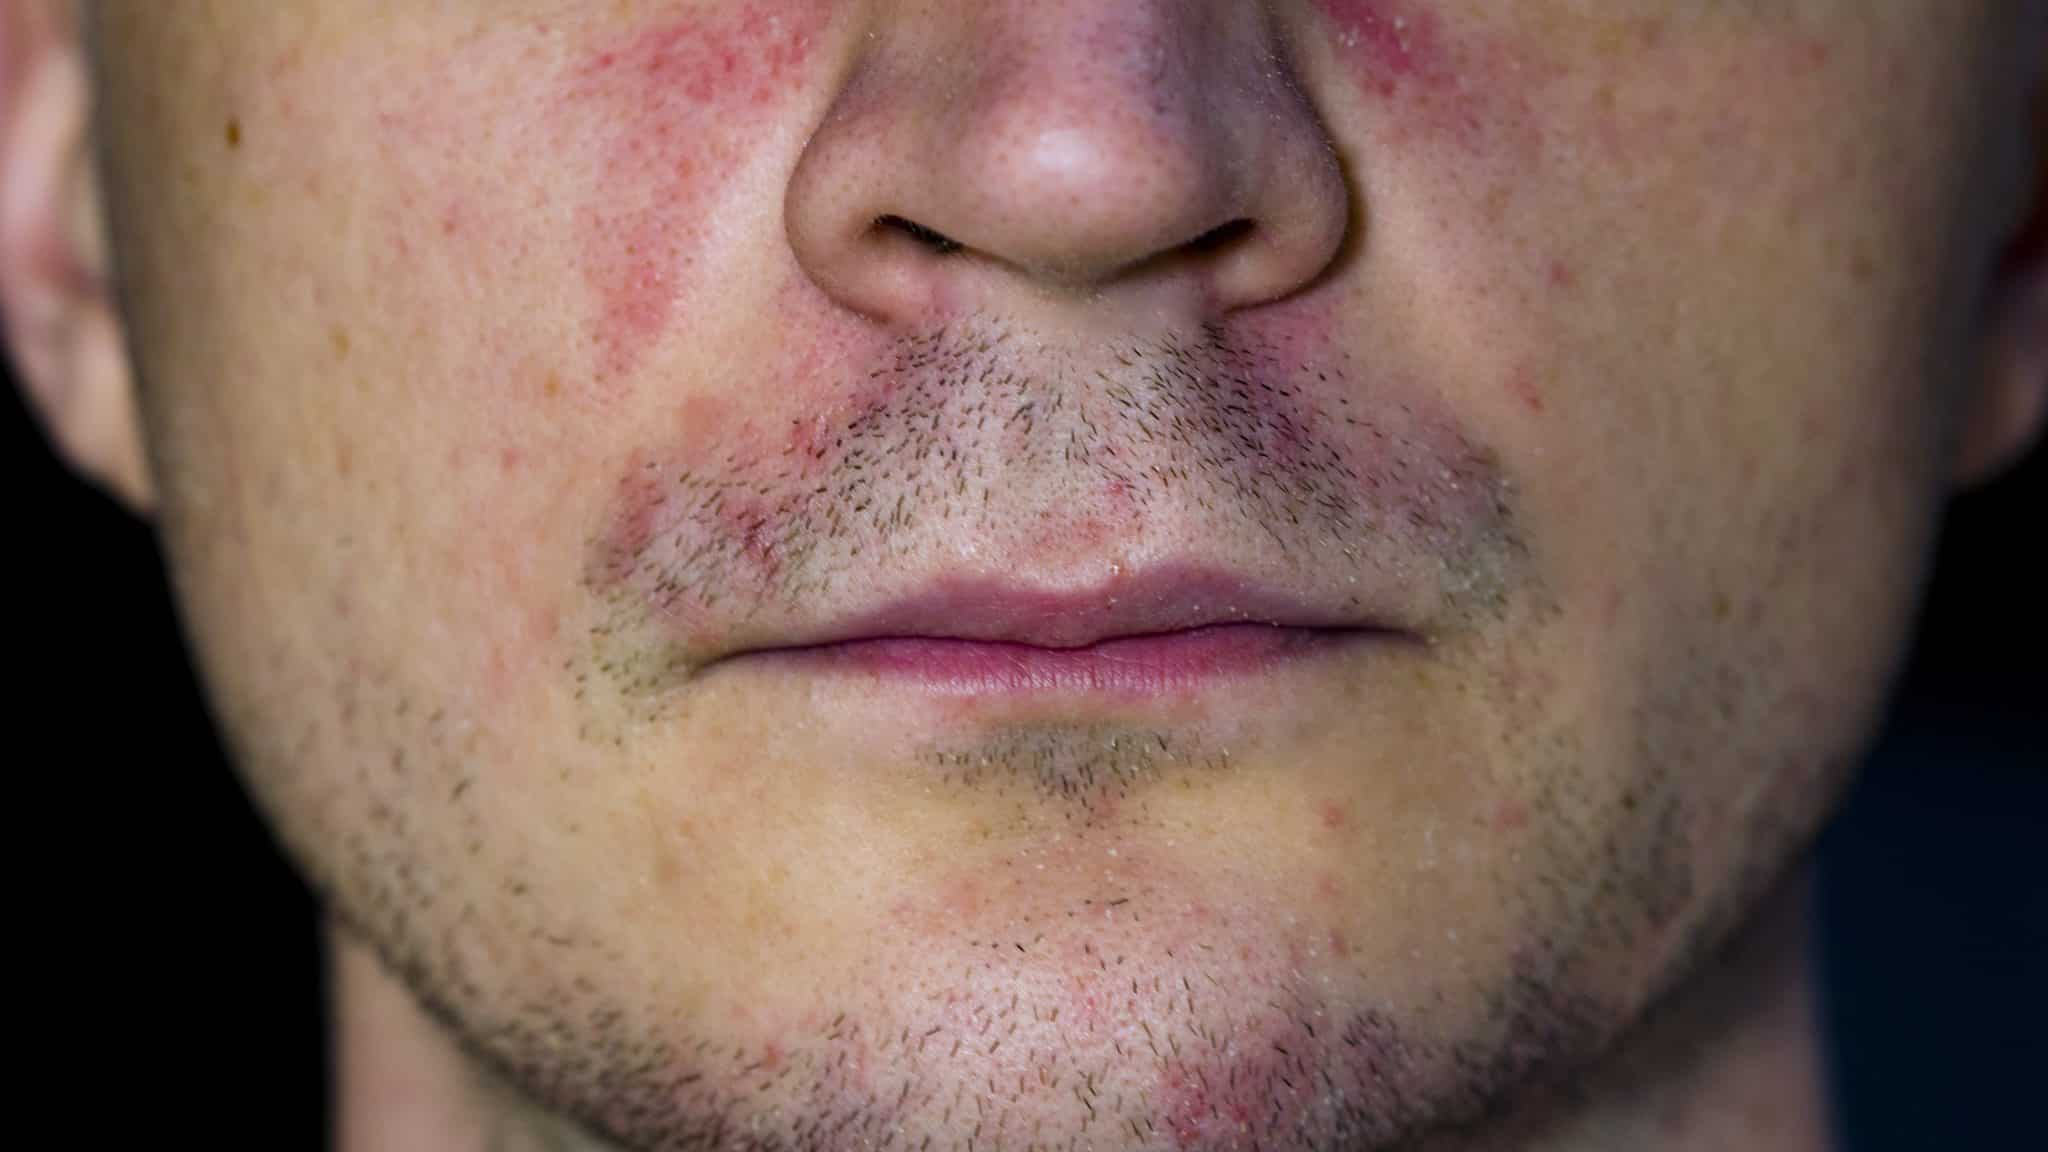 Man with rosacea skin condition